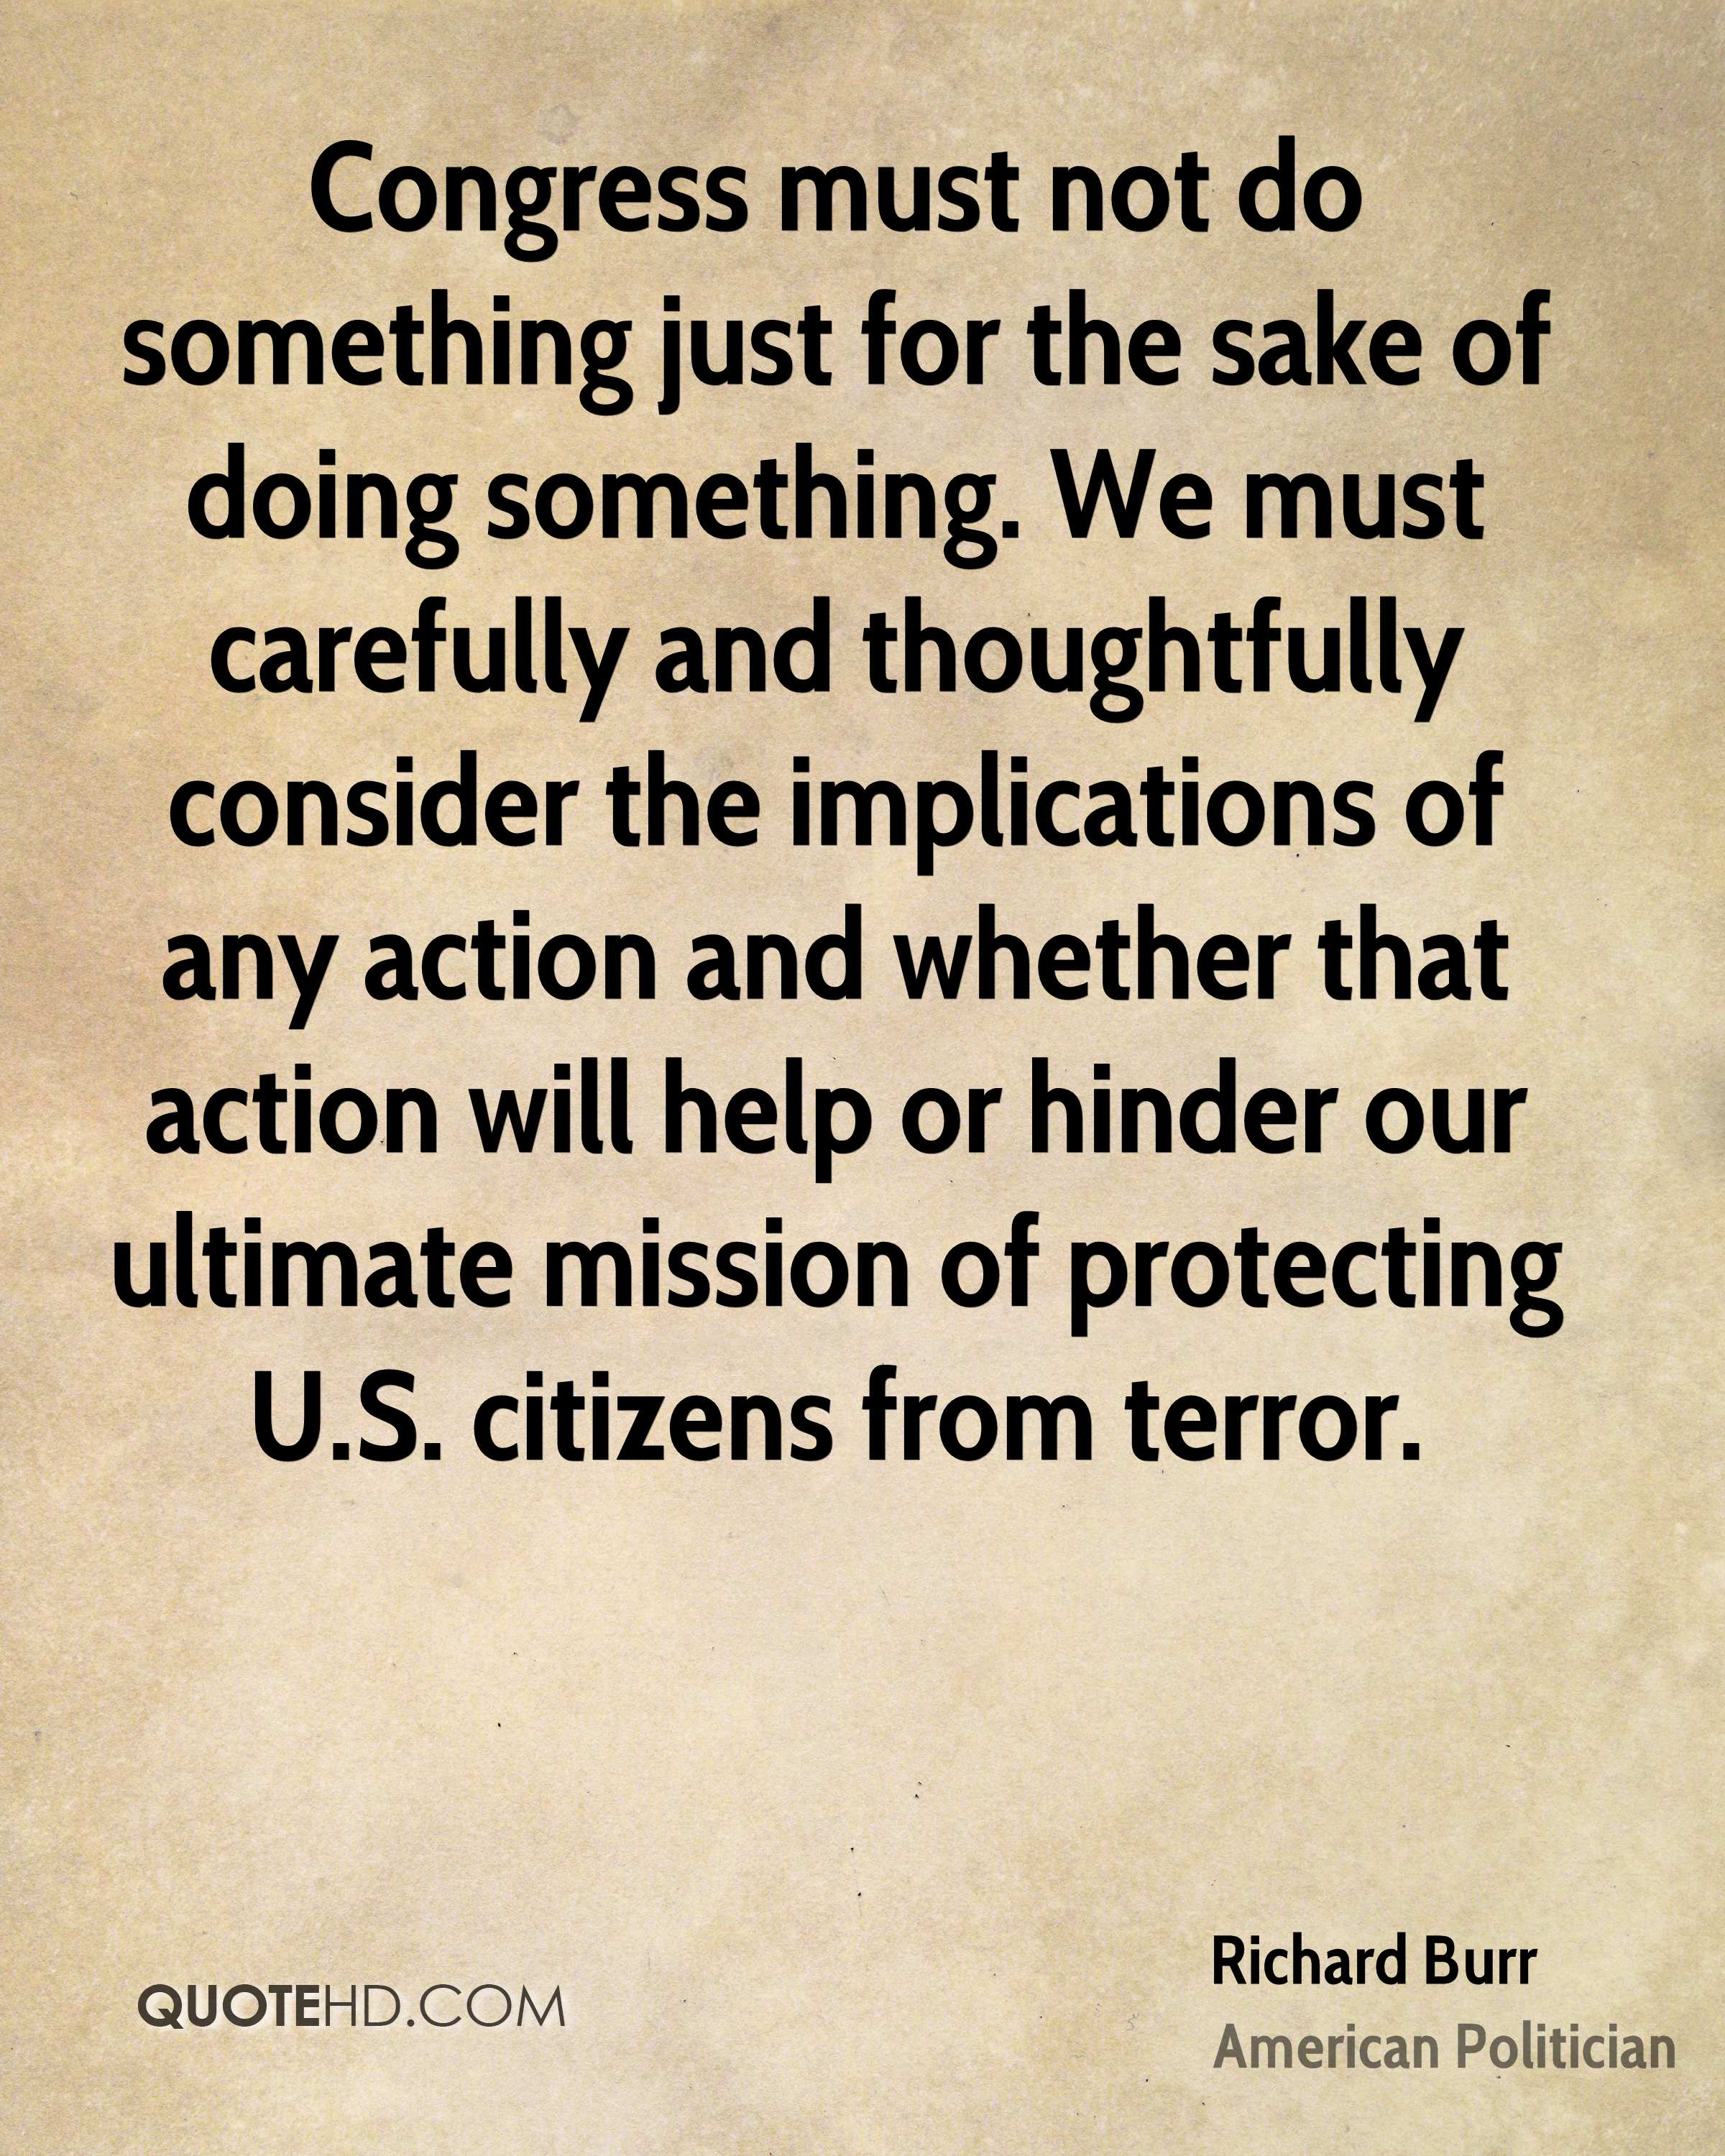 Congress must not do something just for the sake of doing something. We must carefully and thoughtfully consider the implications of any action and whether that action will help or hinder our ultimate mission of protecting U.S. citizens from terror.